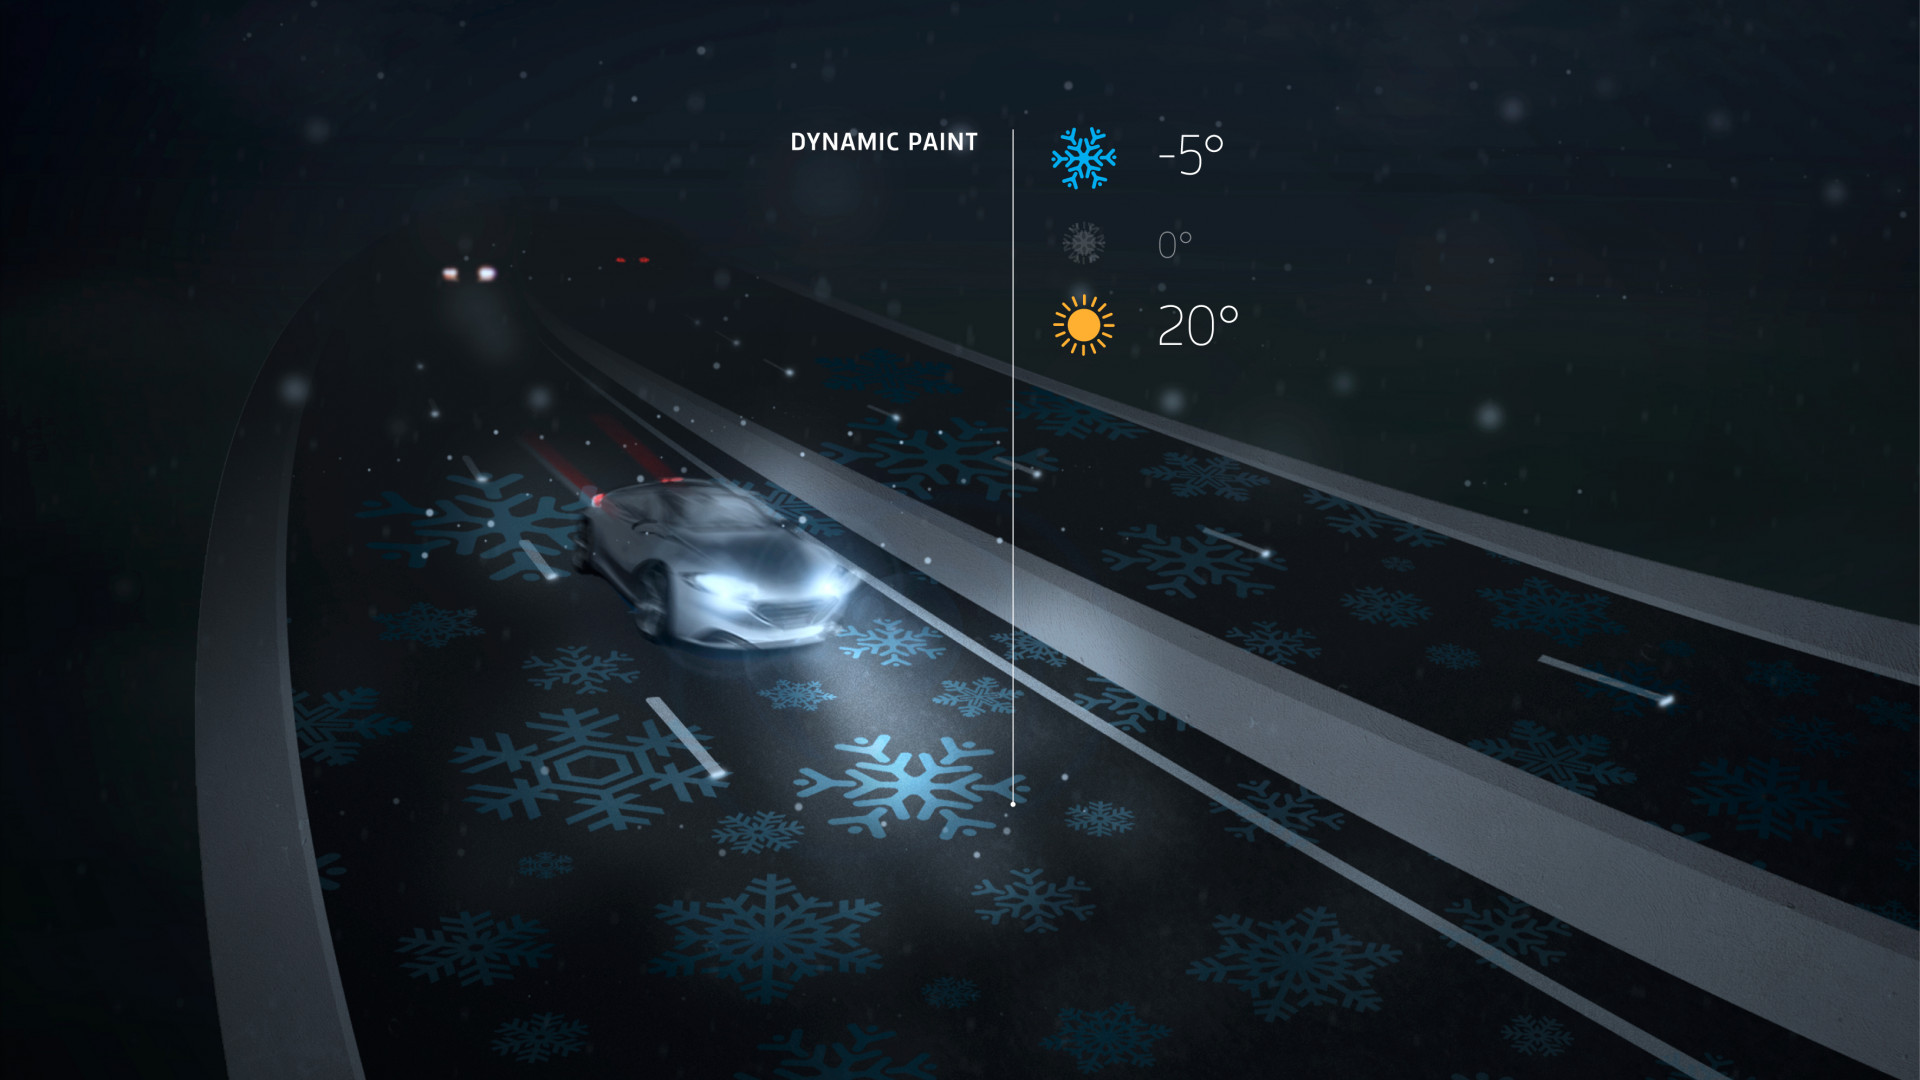 Car passing over a motorway marked with blue snowflakes painted in temperature sensitive paint.